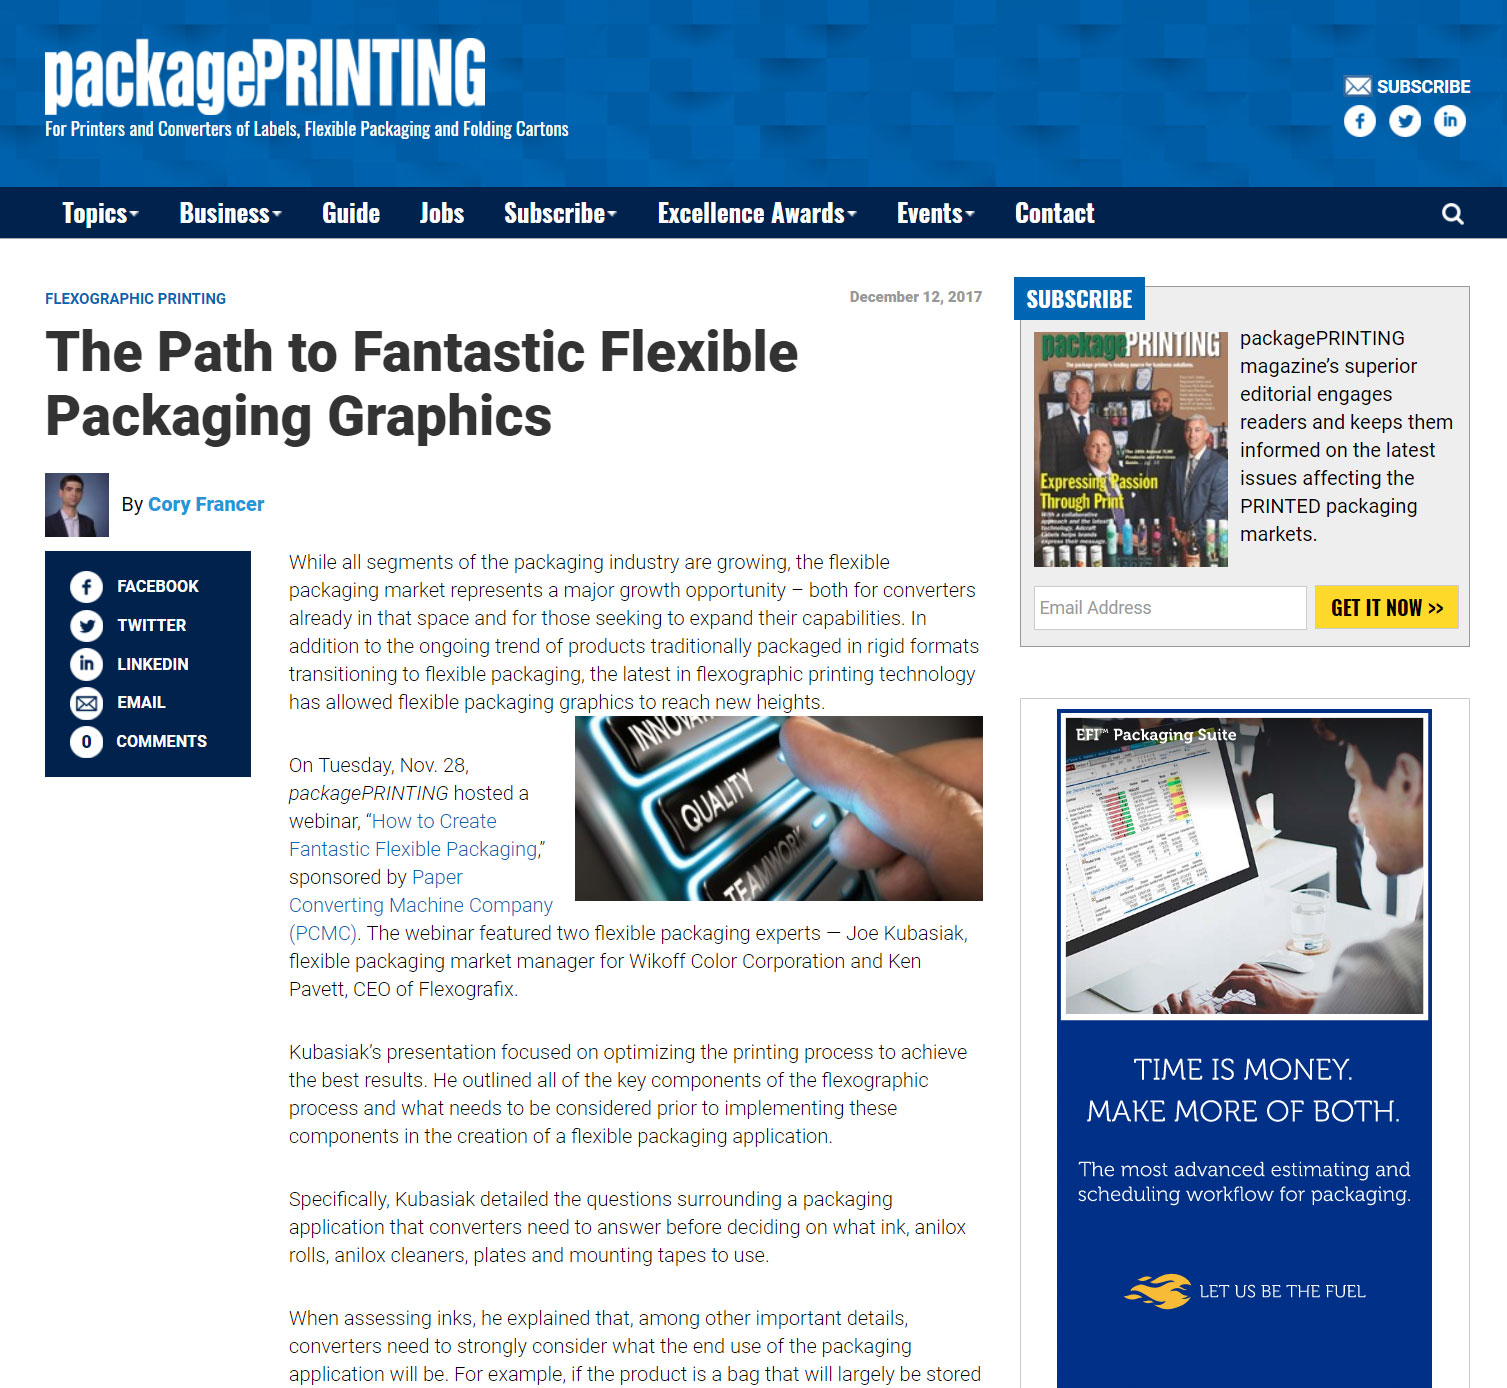 The path to fantastic flexible packaging graphics - Package Printing